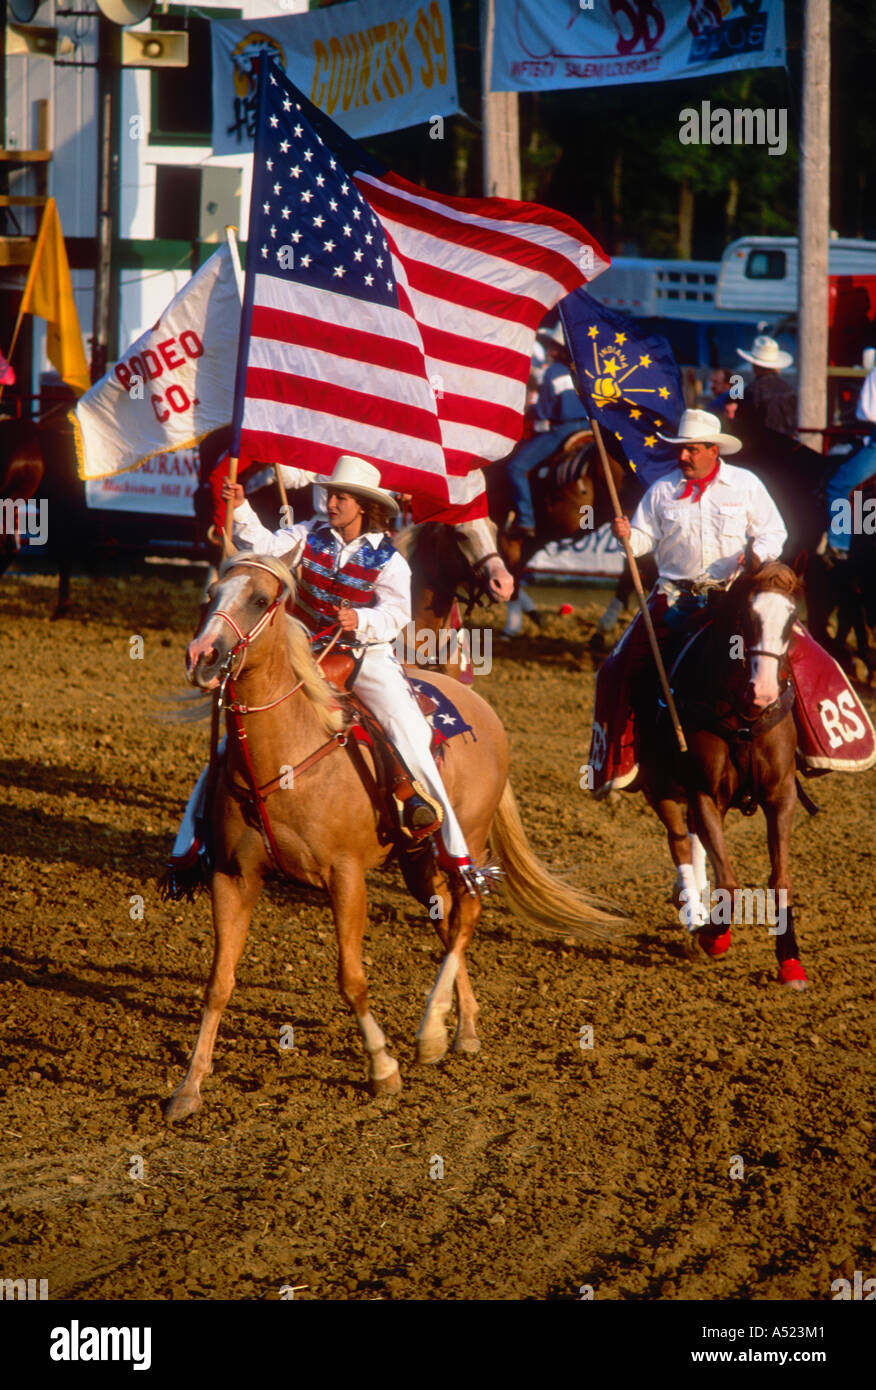 Cowgirl Carrying American Flag Riding Palomino Horse And Cowboy Stock Photo Alamy